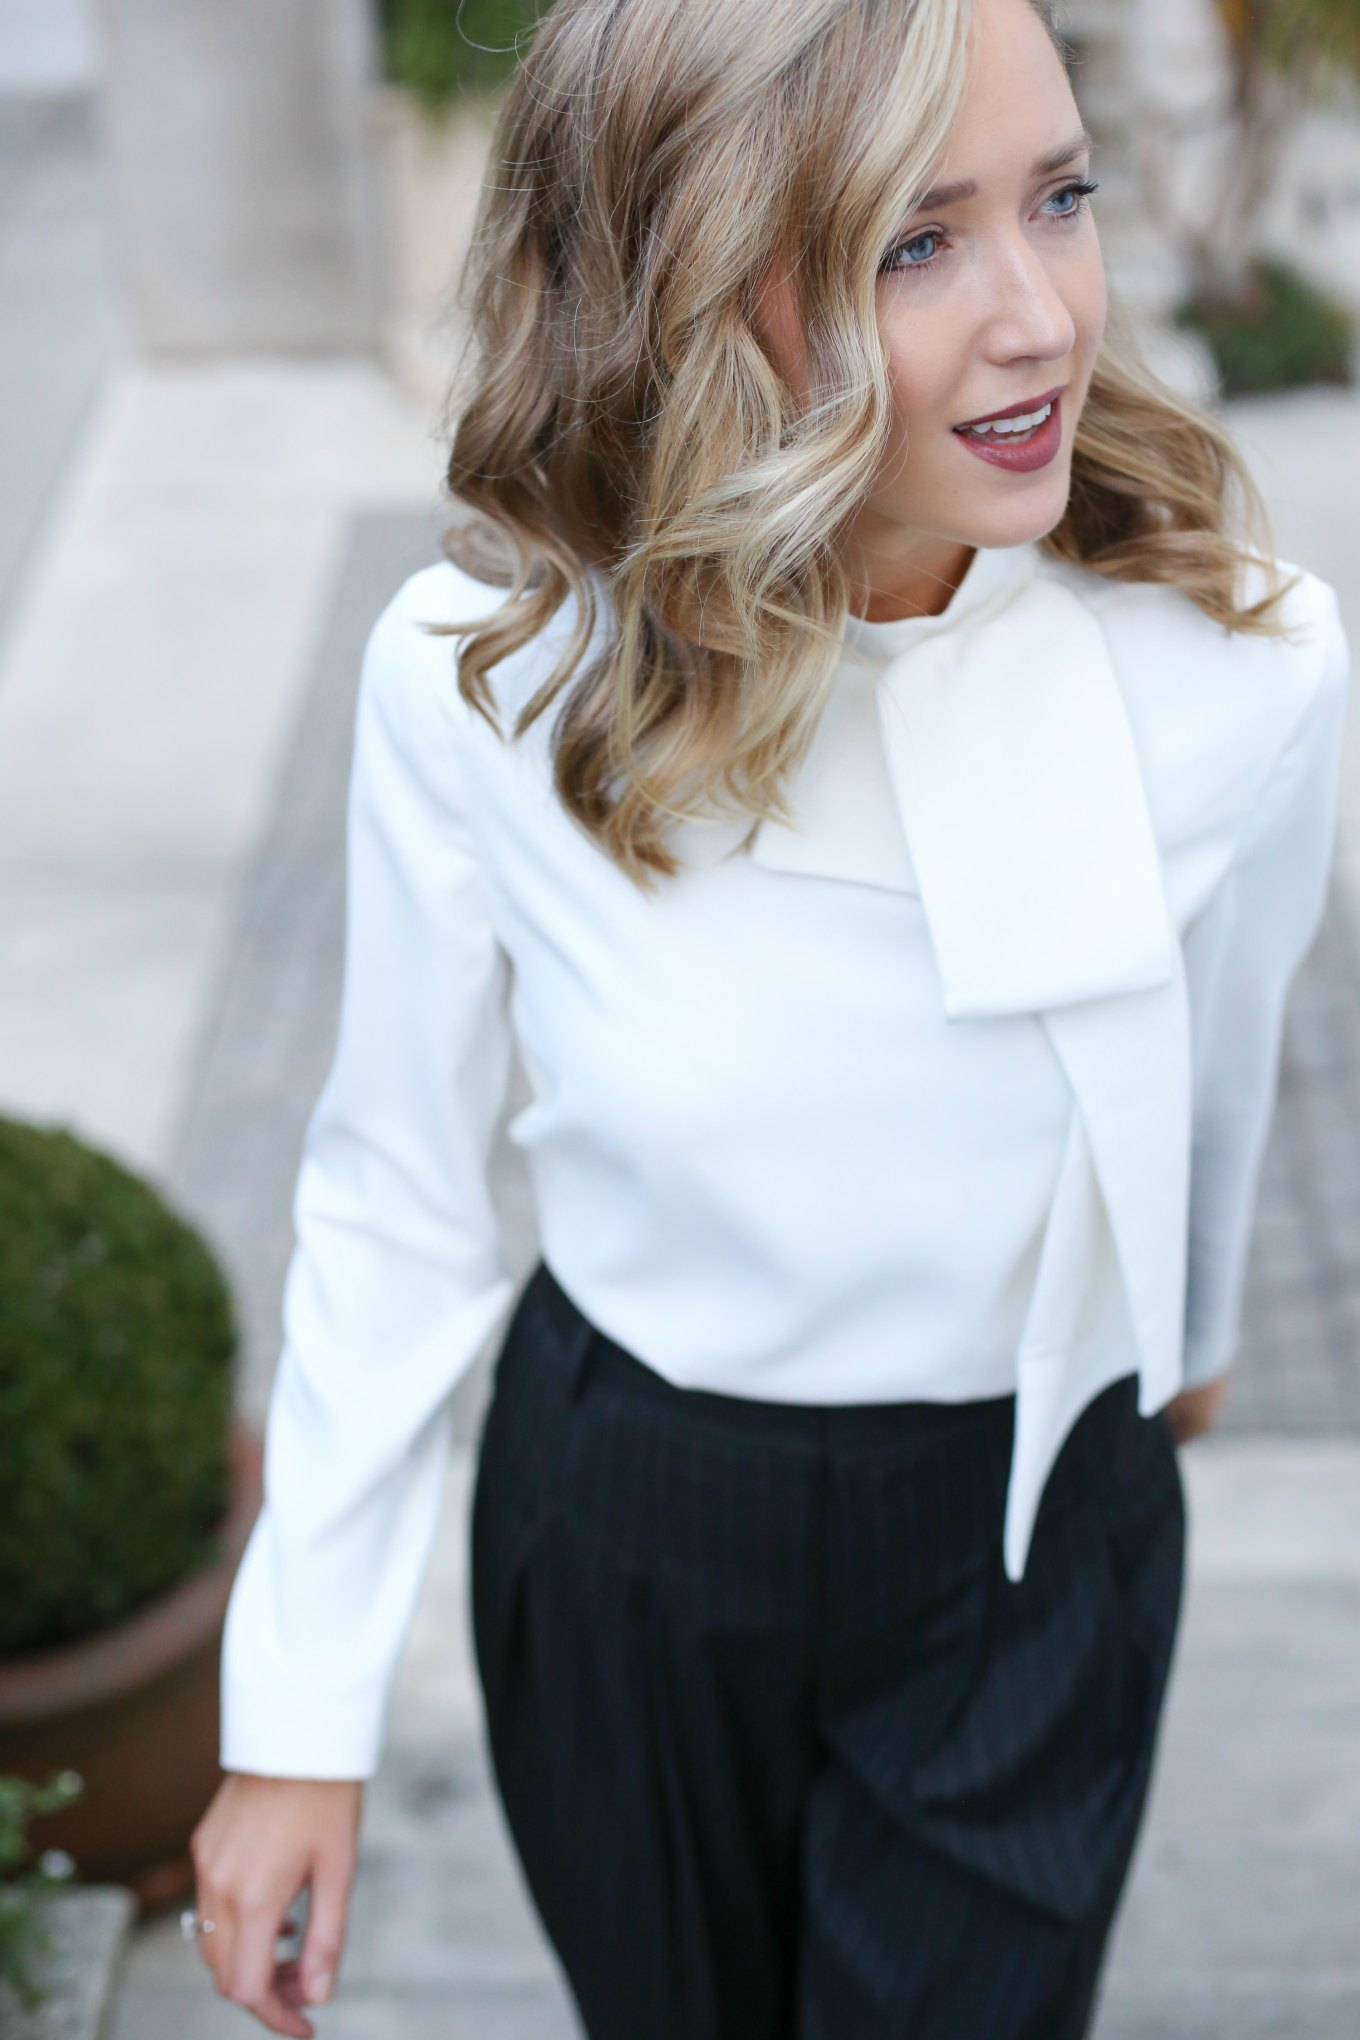 cf2715a0ad7d9a Womens bow tie neck blouse - woltermanortho.com